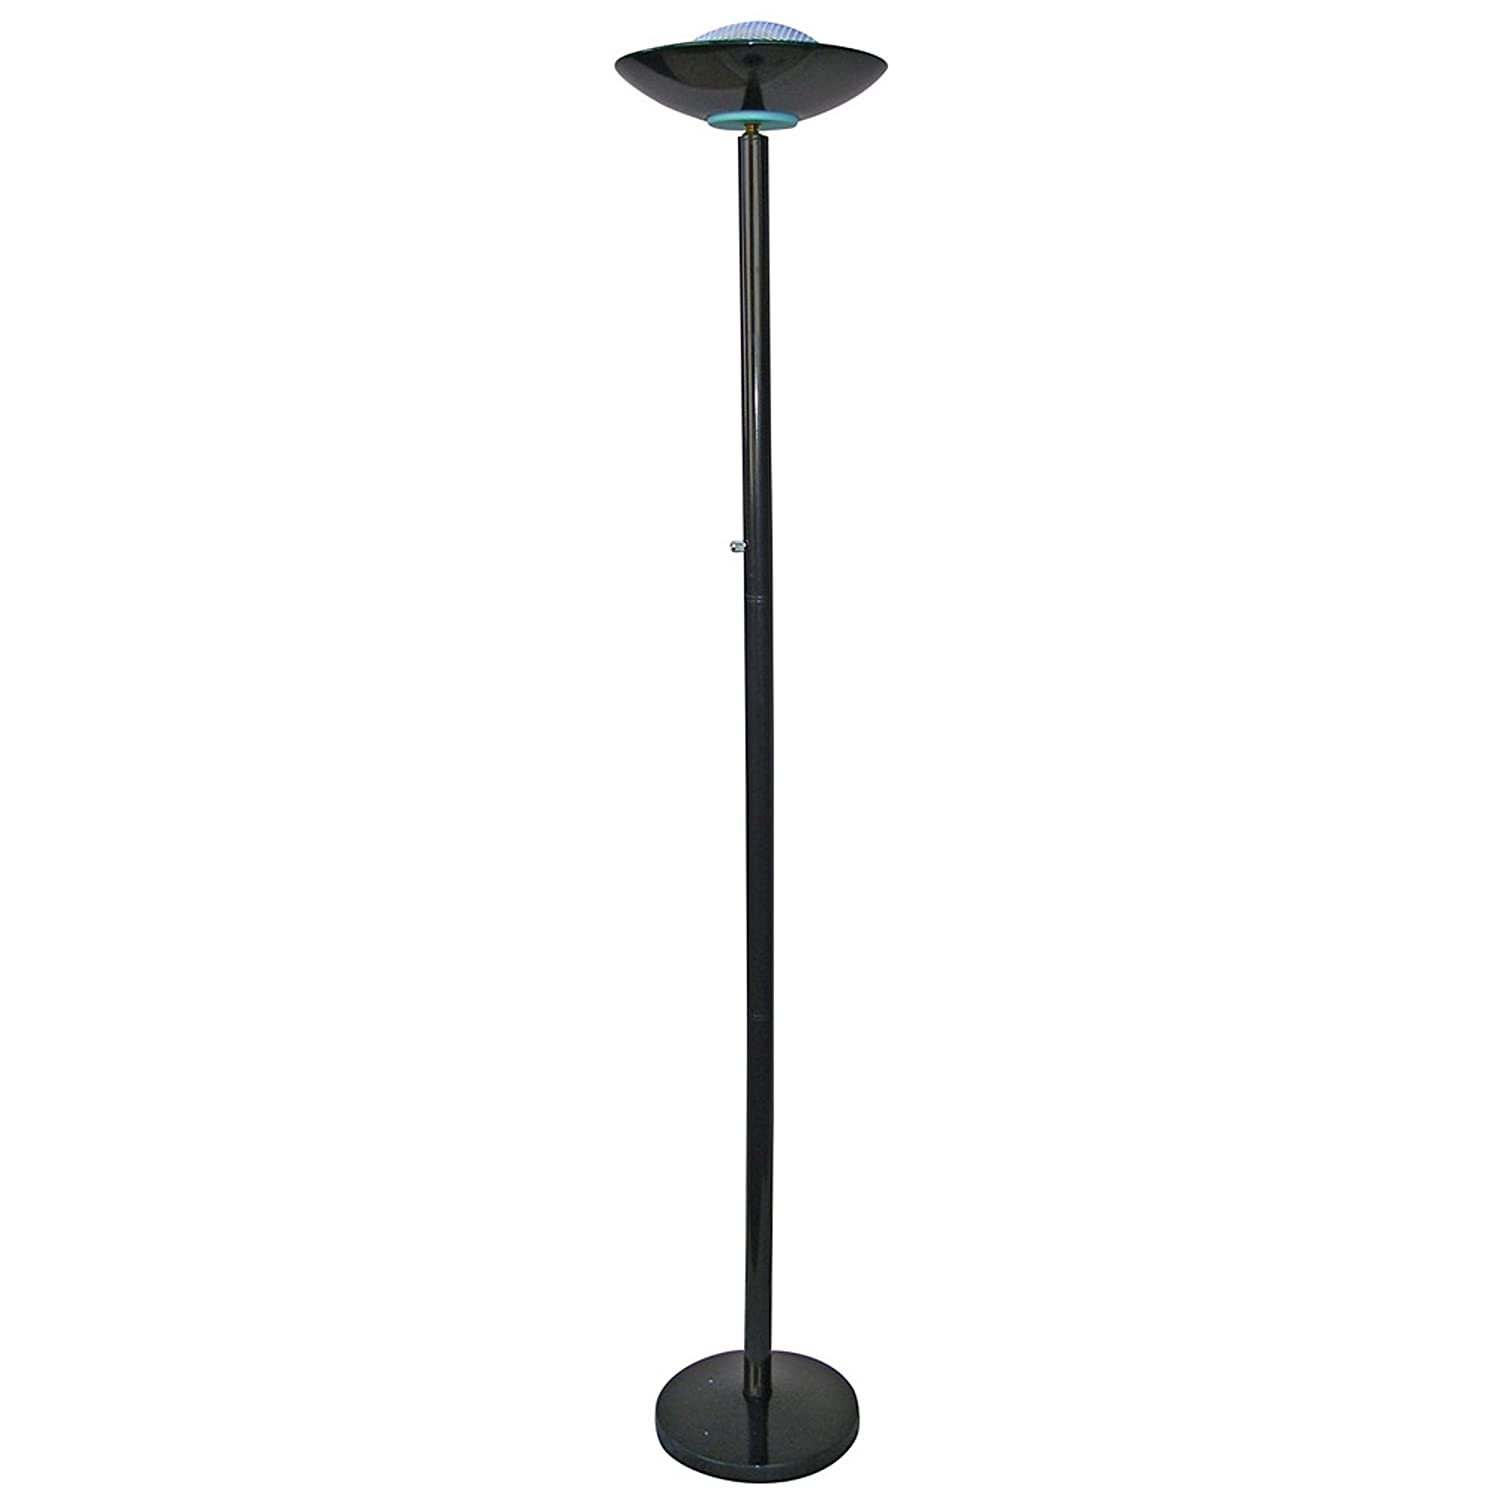 Amazon white floor lamp nursery - Ore International 3030bk 190w Halogen Torchiere Black Floor Lamps Amazon Com